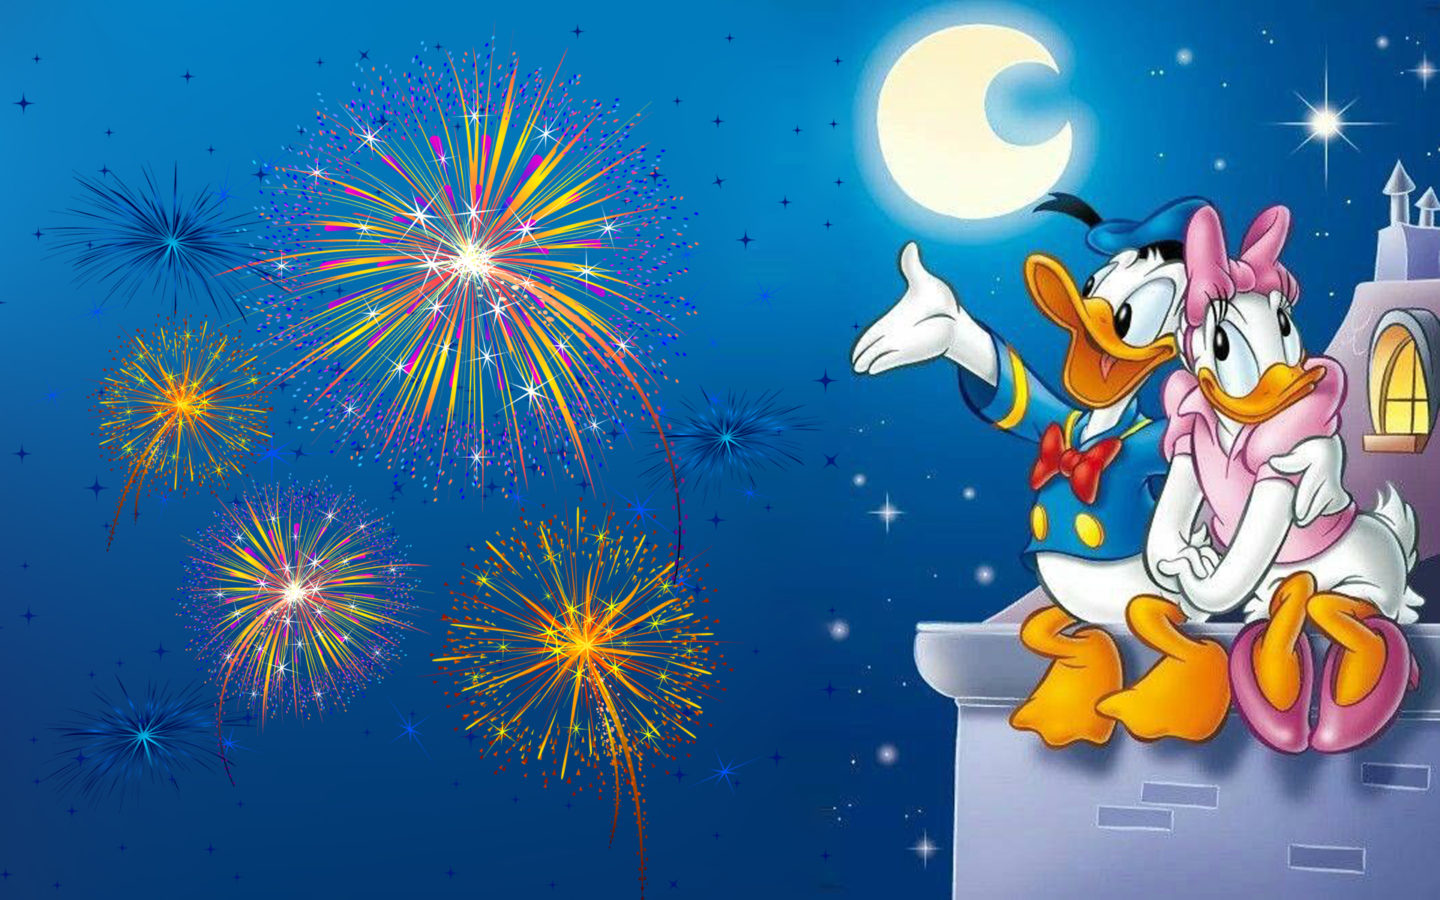 Mickey Mouse Wallpaper Iphone 4 Donald Duck And Daisy Duck Romantic Evening Watching The